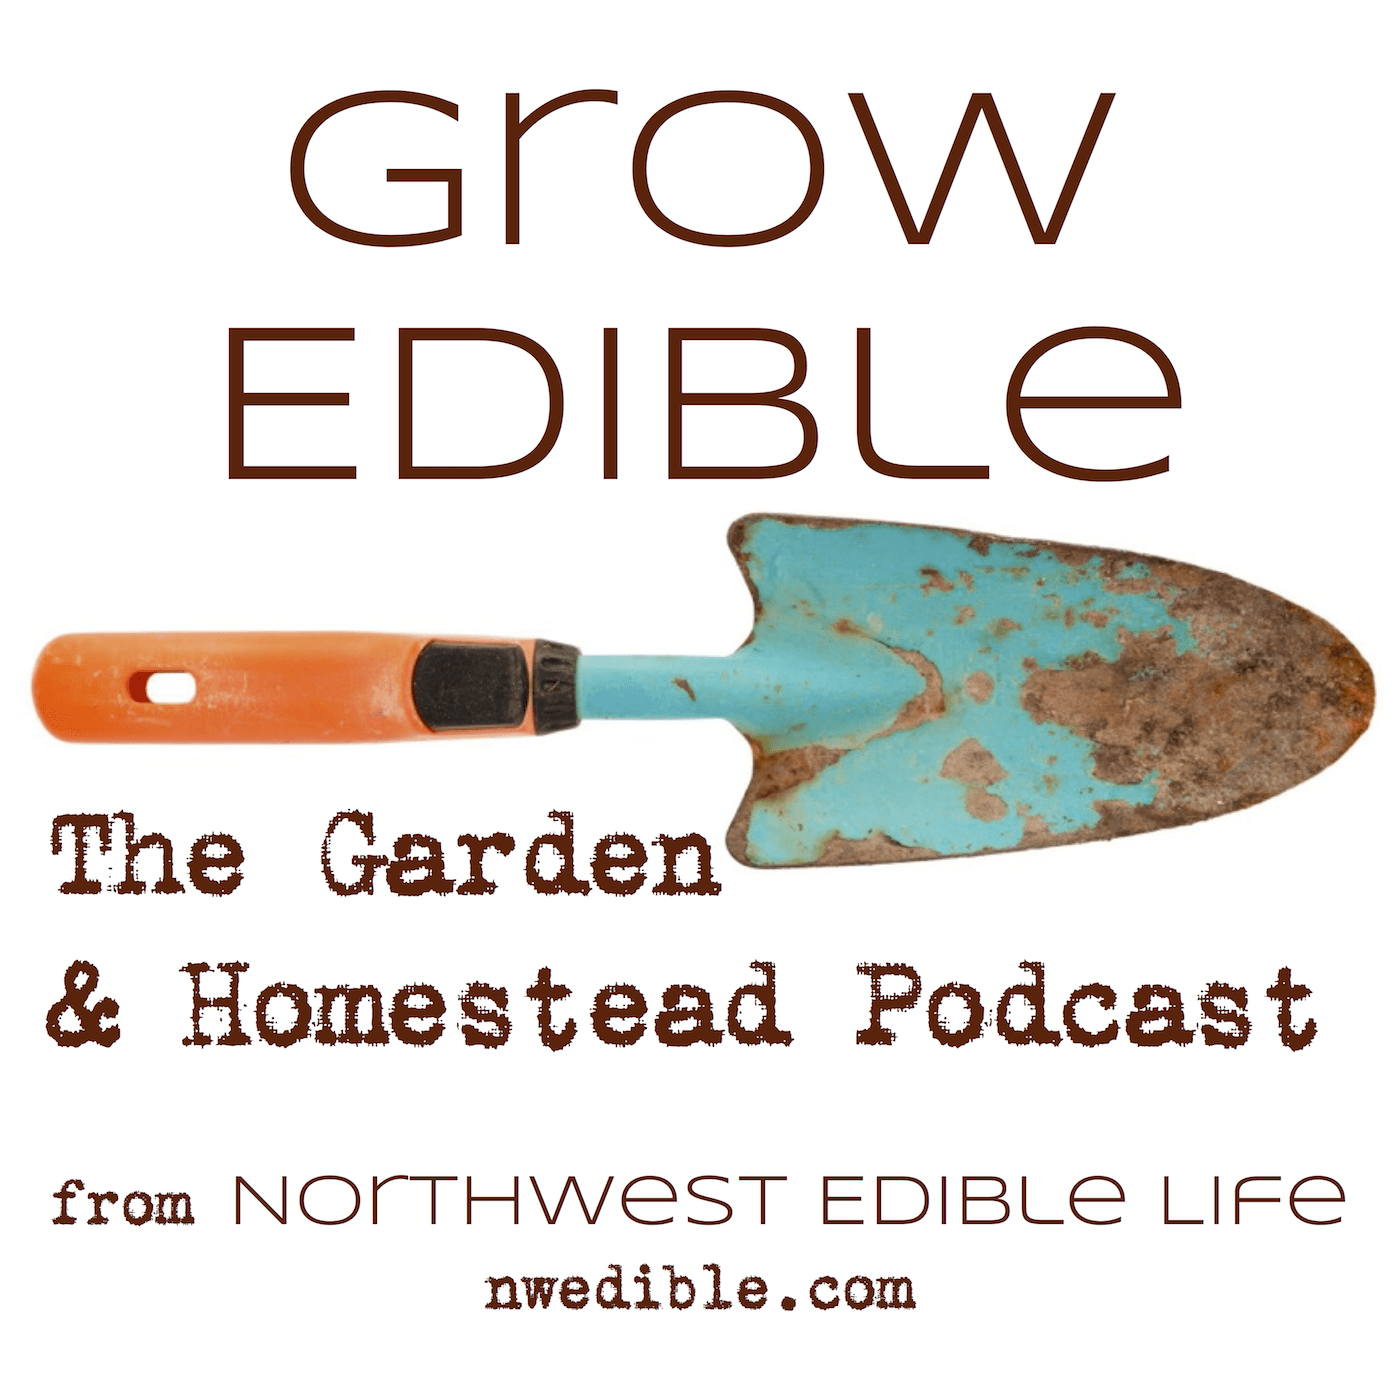 Grow Edible from Northwest Edible Life